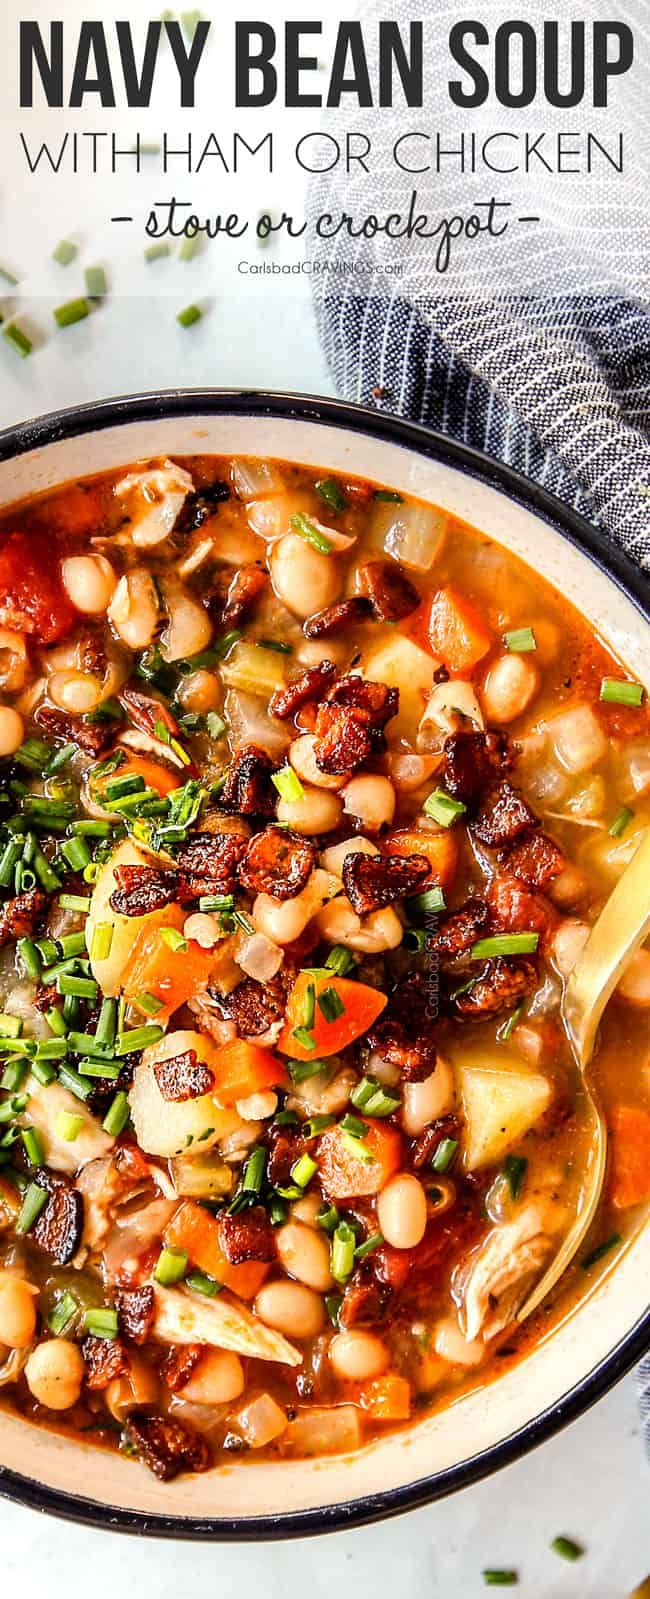 This Navy Bean Soup Recipe Is Savory Smoky Hearty Comforting And Can Be Made With Leftover